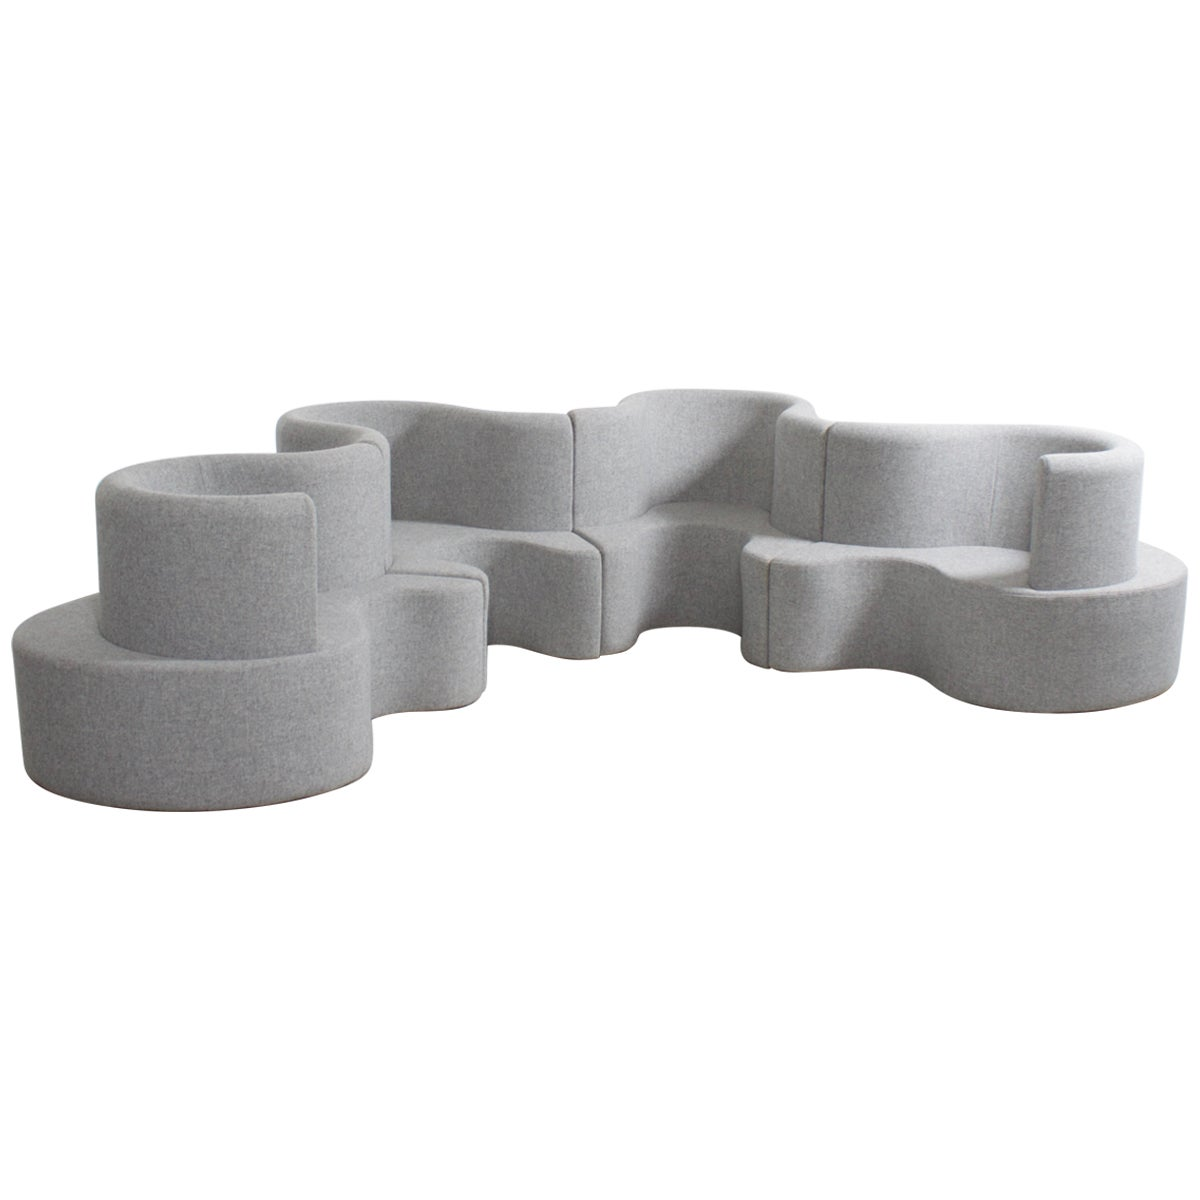 Impressive Clover Leaf Sectional Sofa by Verner Panton in Grey Fabric